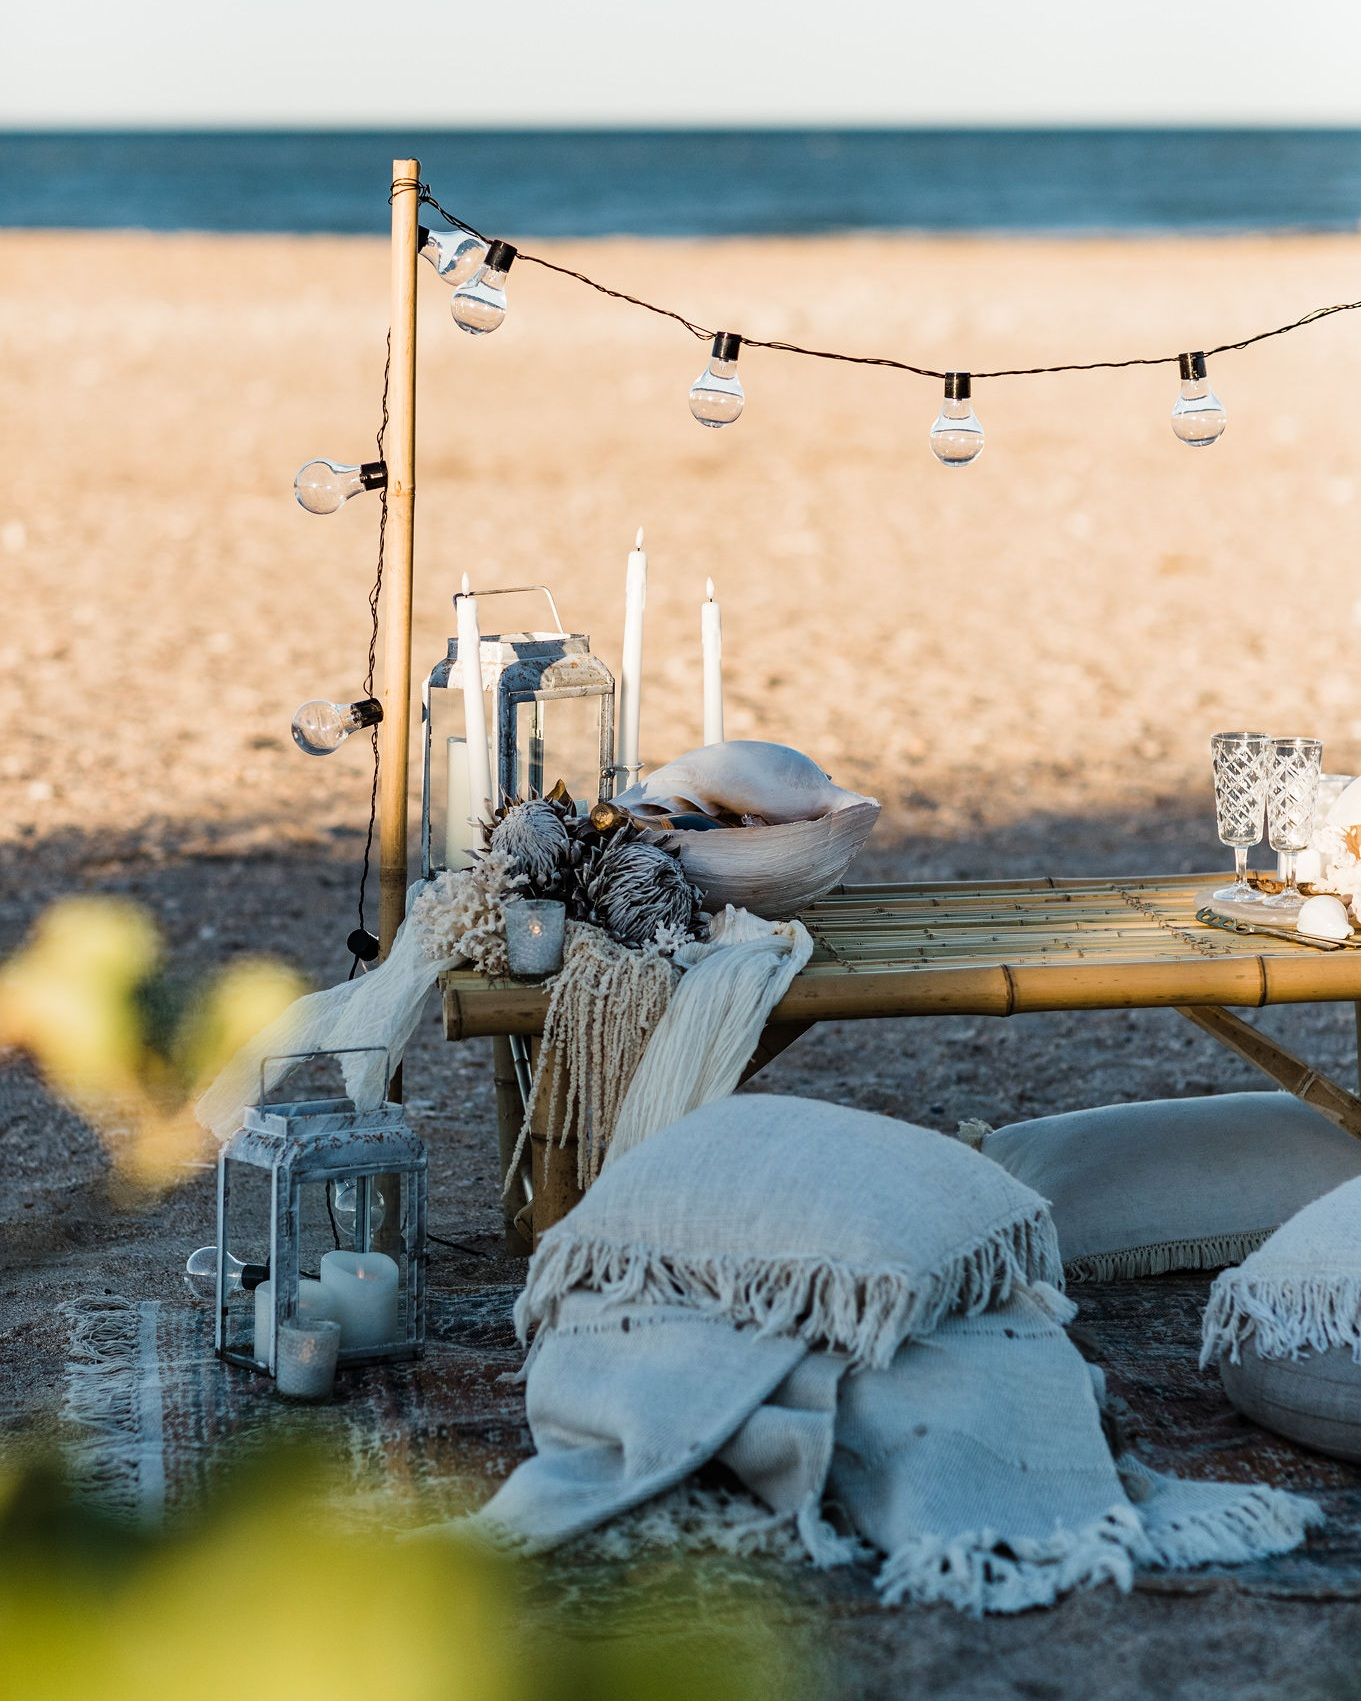 - Jess you did such an amazing job with the set up of our proposal beach picnic in Exmouth. It was just so beautiful and the most amazing surprise! Food was delicious and champagne was perfect. Thank you so much for everything!Proposal Sheldon & Ashley